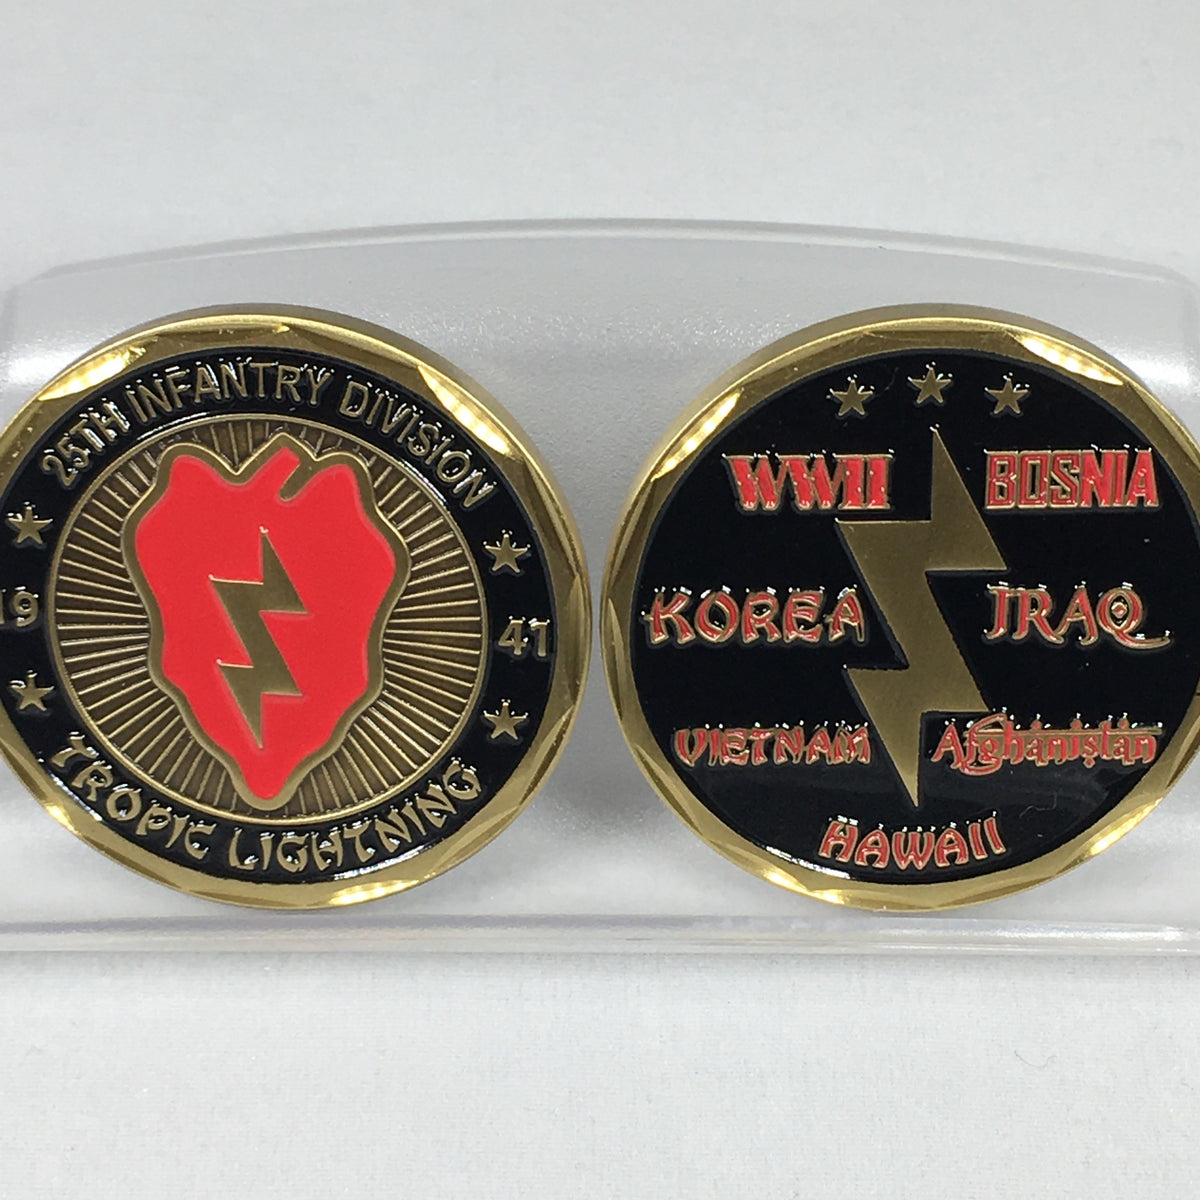 25th Infantry Divisiion Challenge Coin